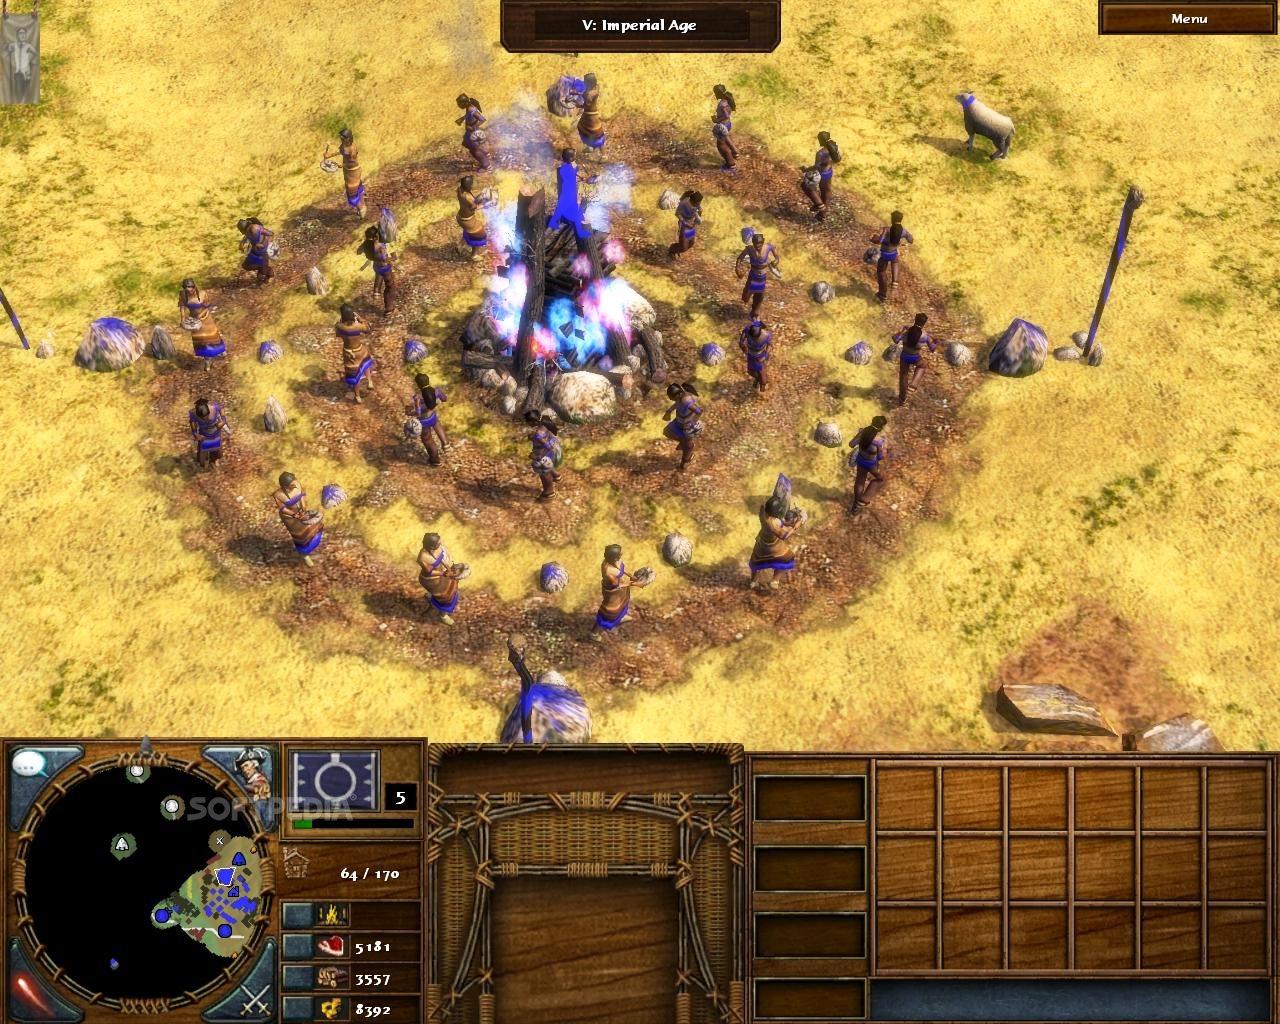 Age of empires iii demo download